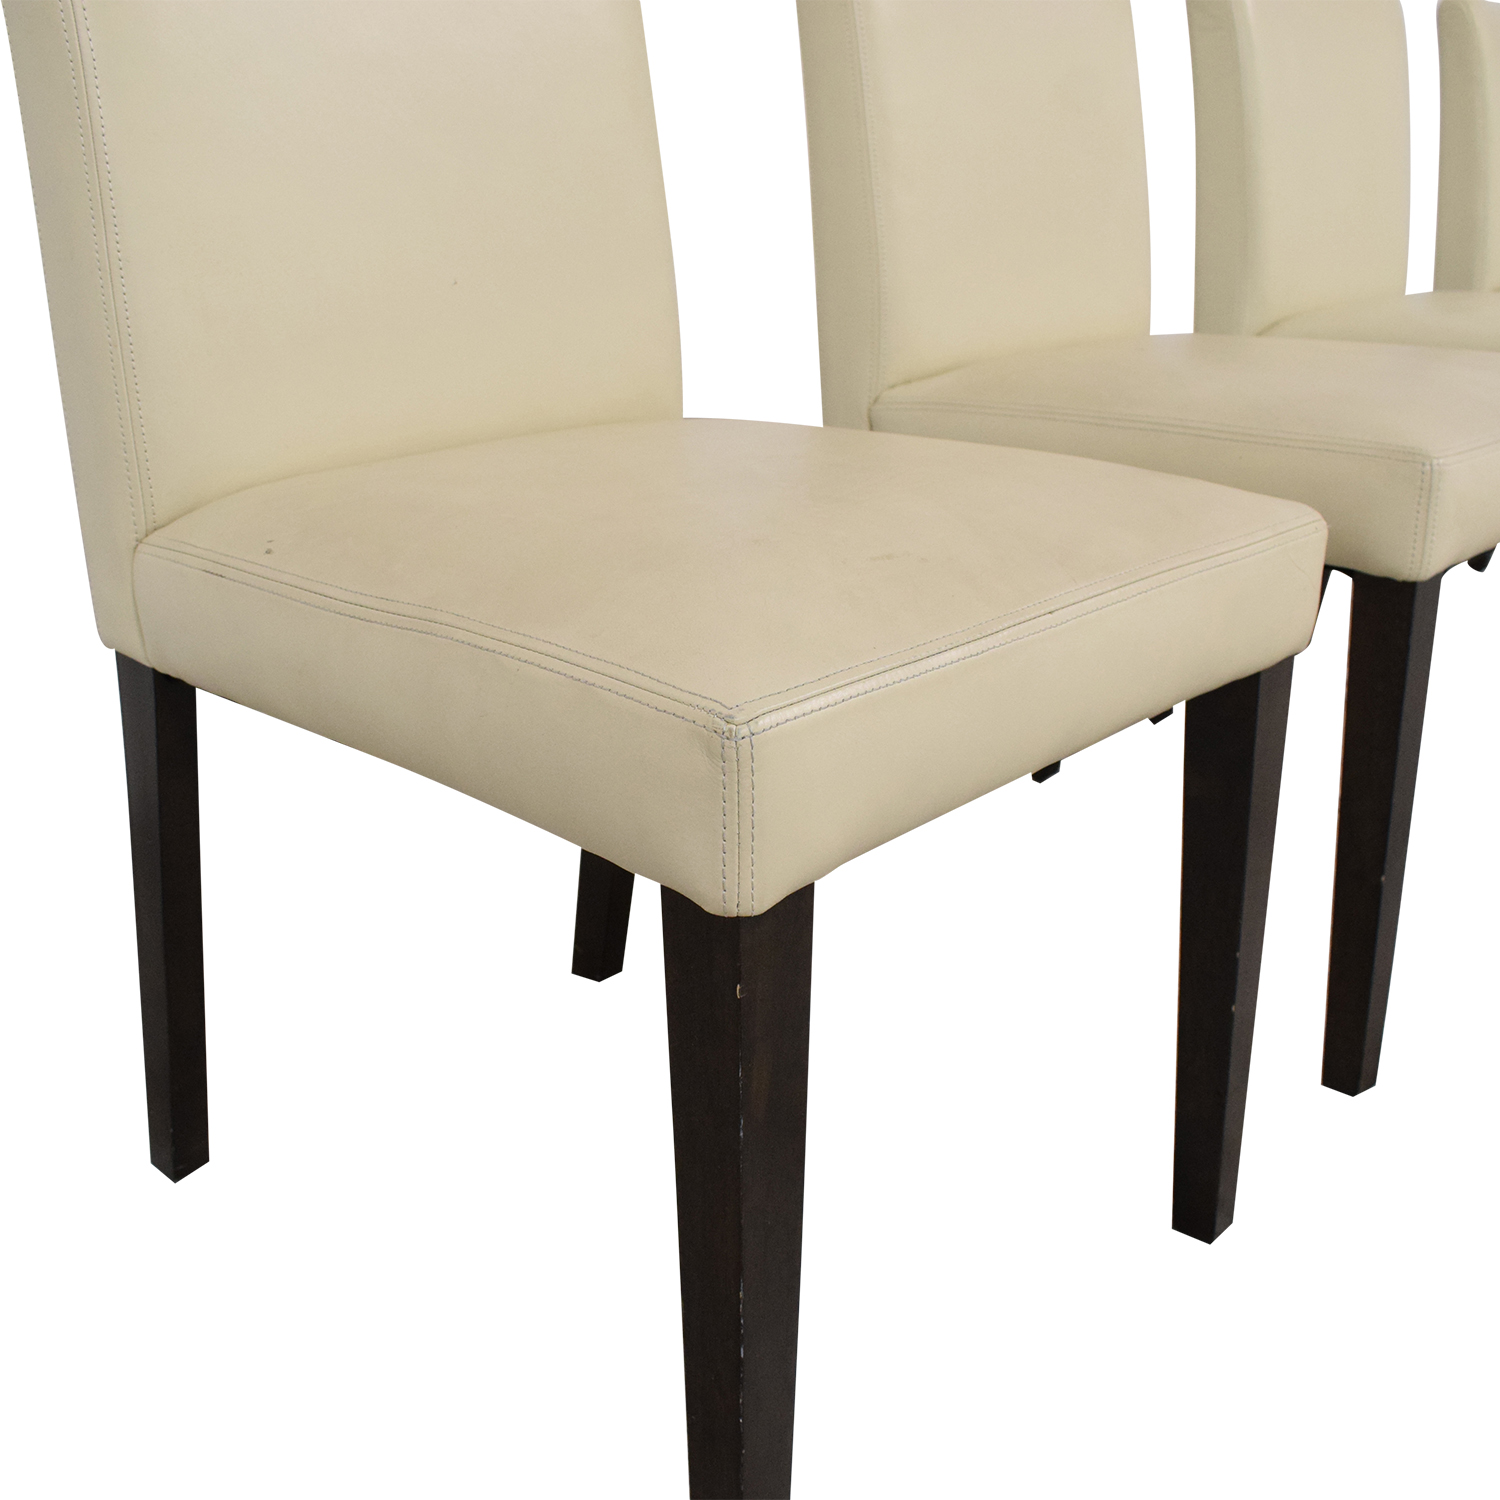 West Elm West Elm Parson Chairs used